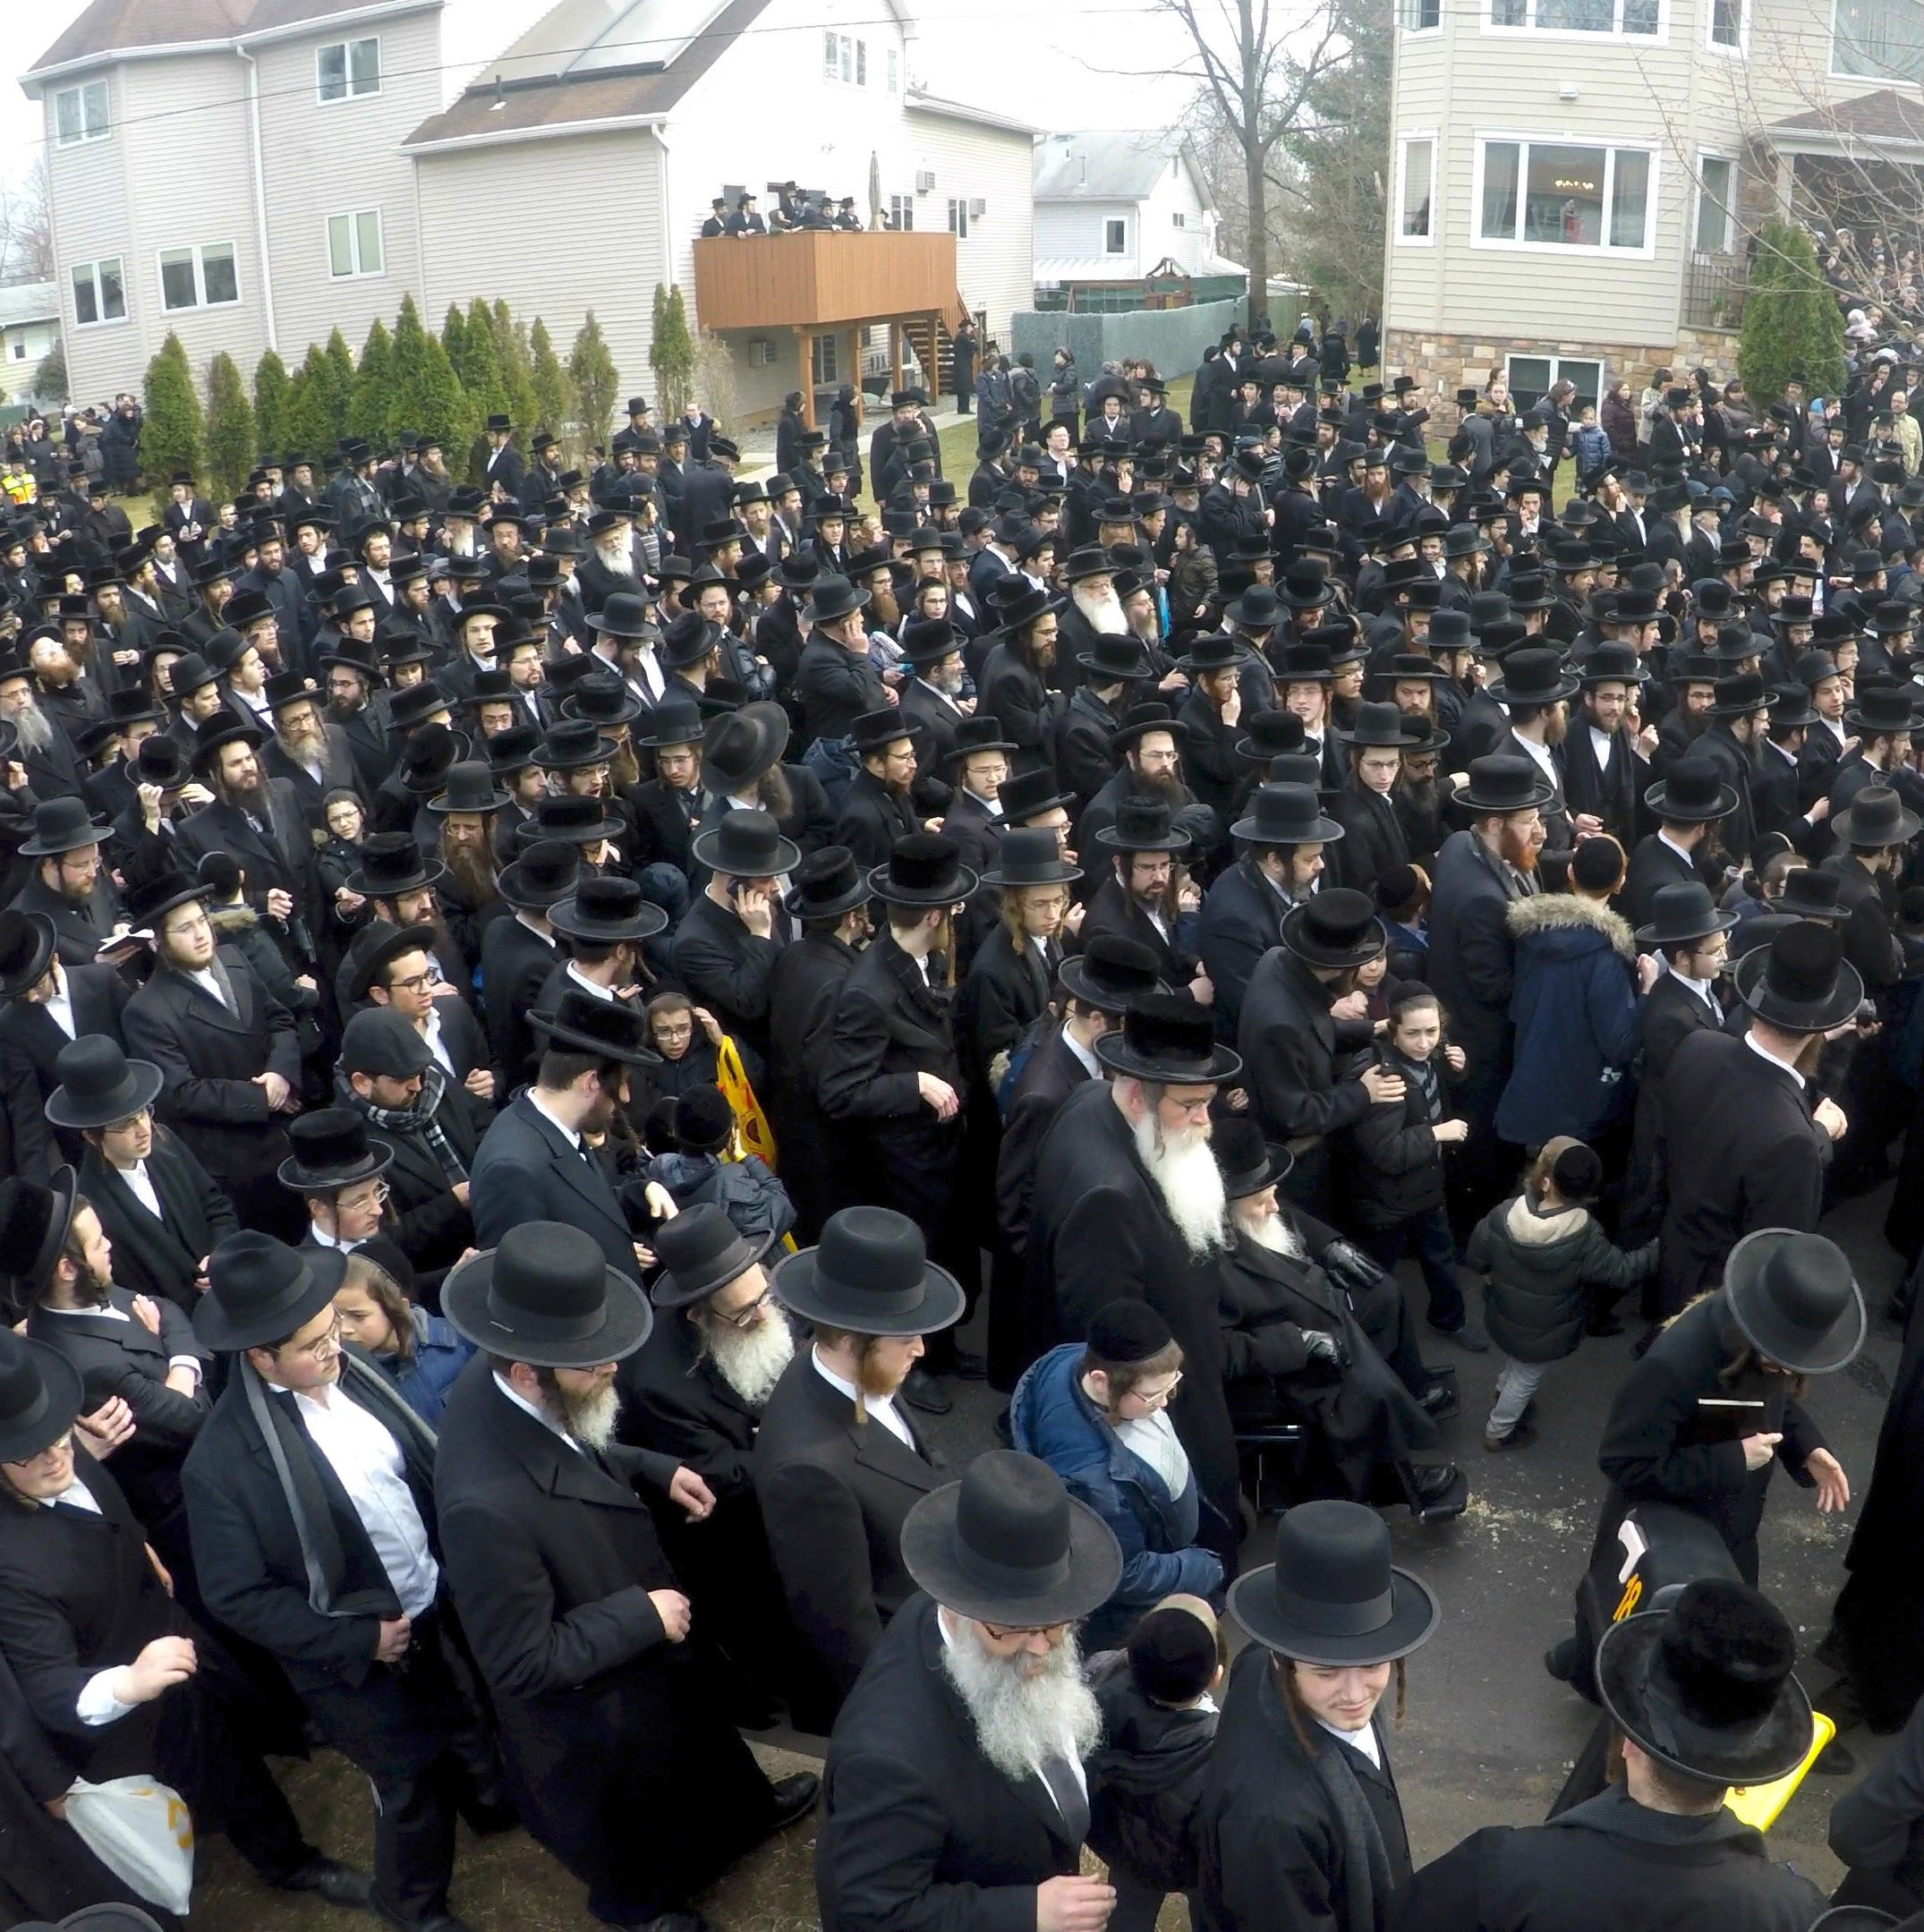 Monsey man accused of hitting NYPD officer with drone during Brooklyn funeral